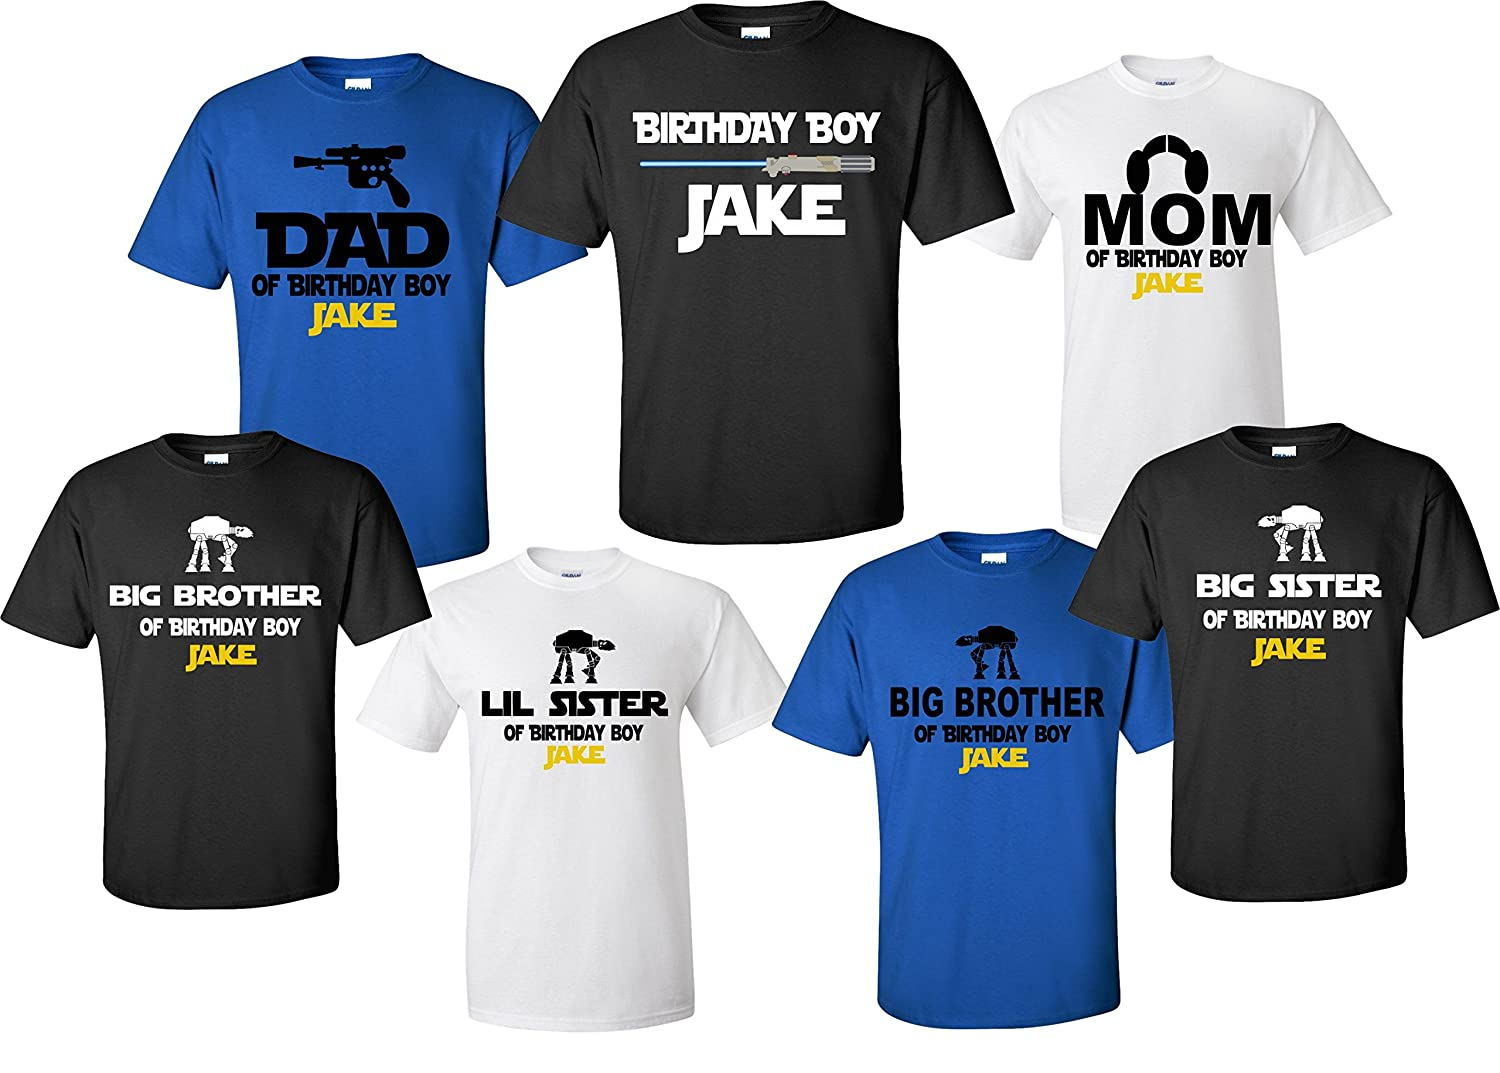 Amazon Star Wars Birthday Boy Family Shirts Mom Dad Sister Brother Of The Cool New Creative Party T Clothing